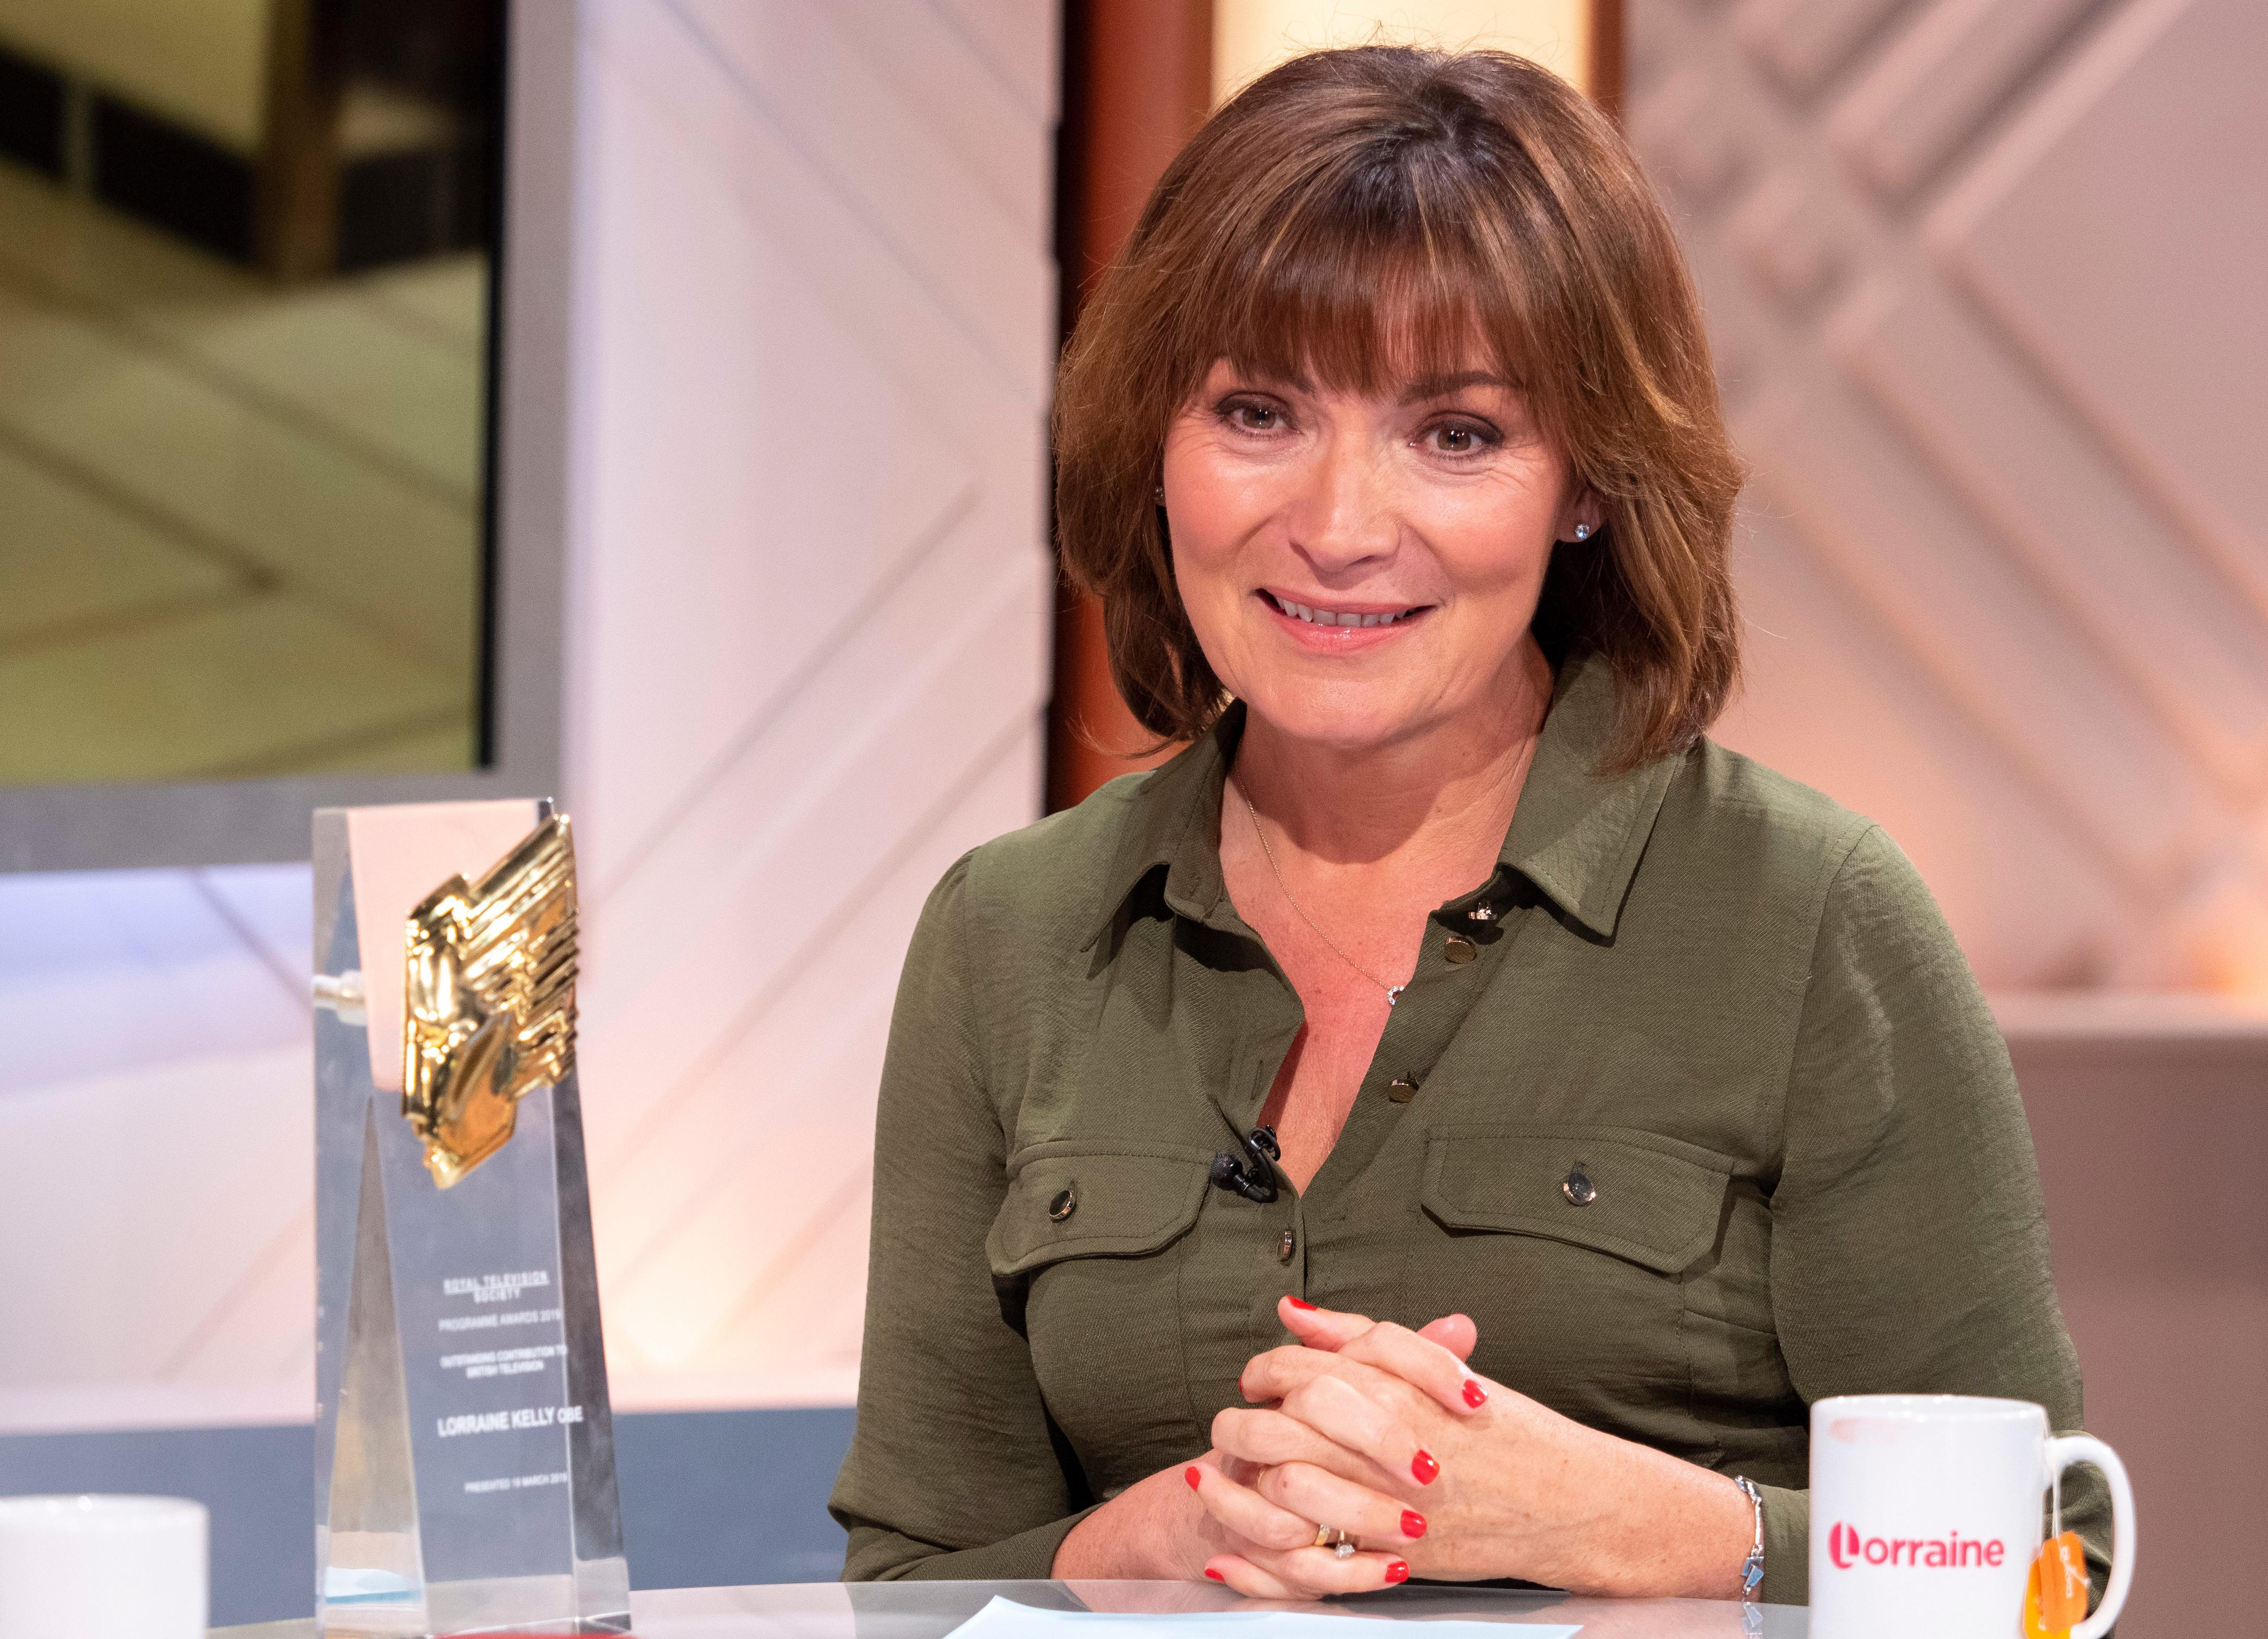 Are we not all Lorraine Kelly, playing versions of ourselves?